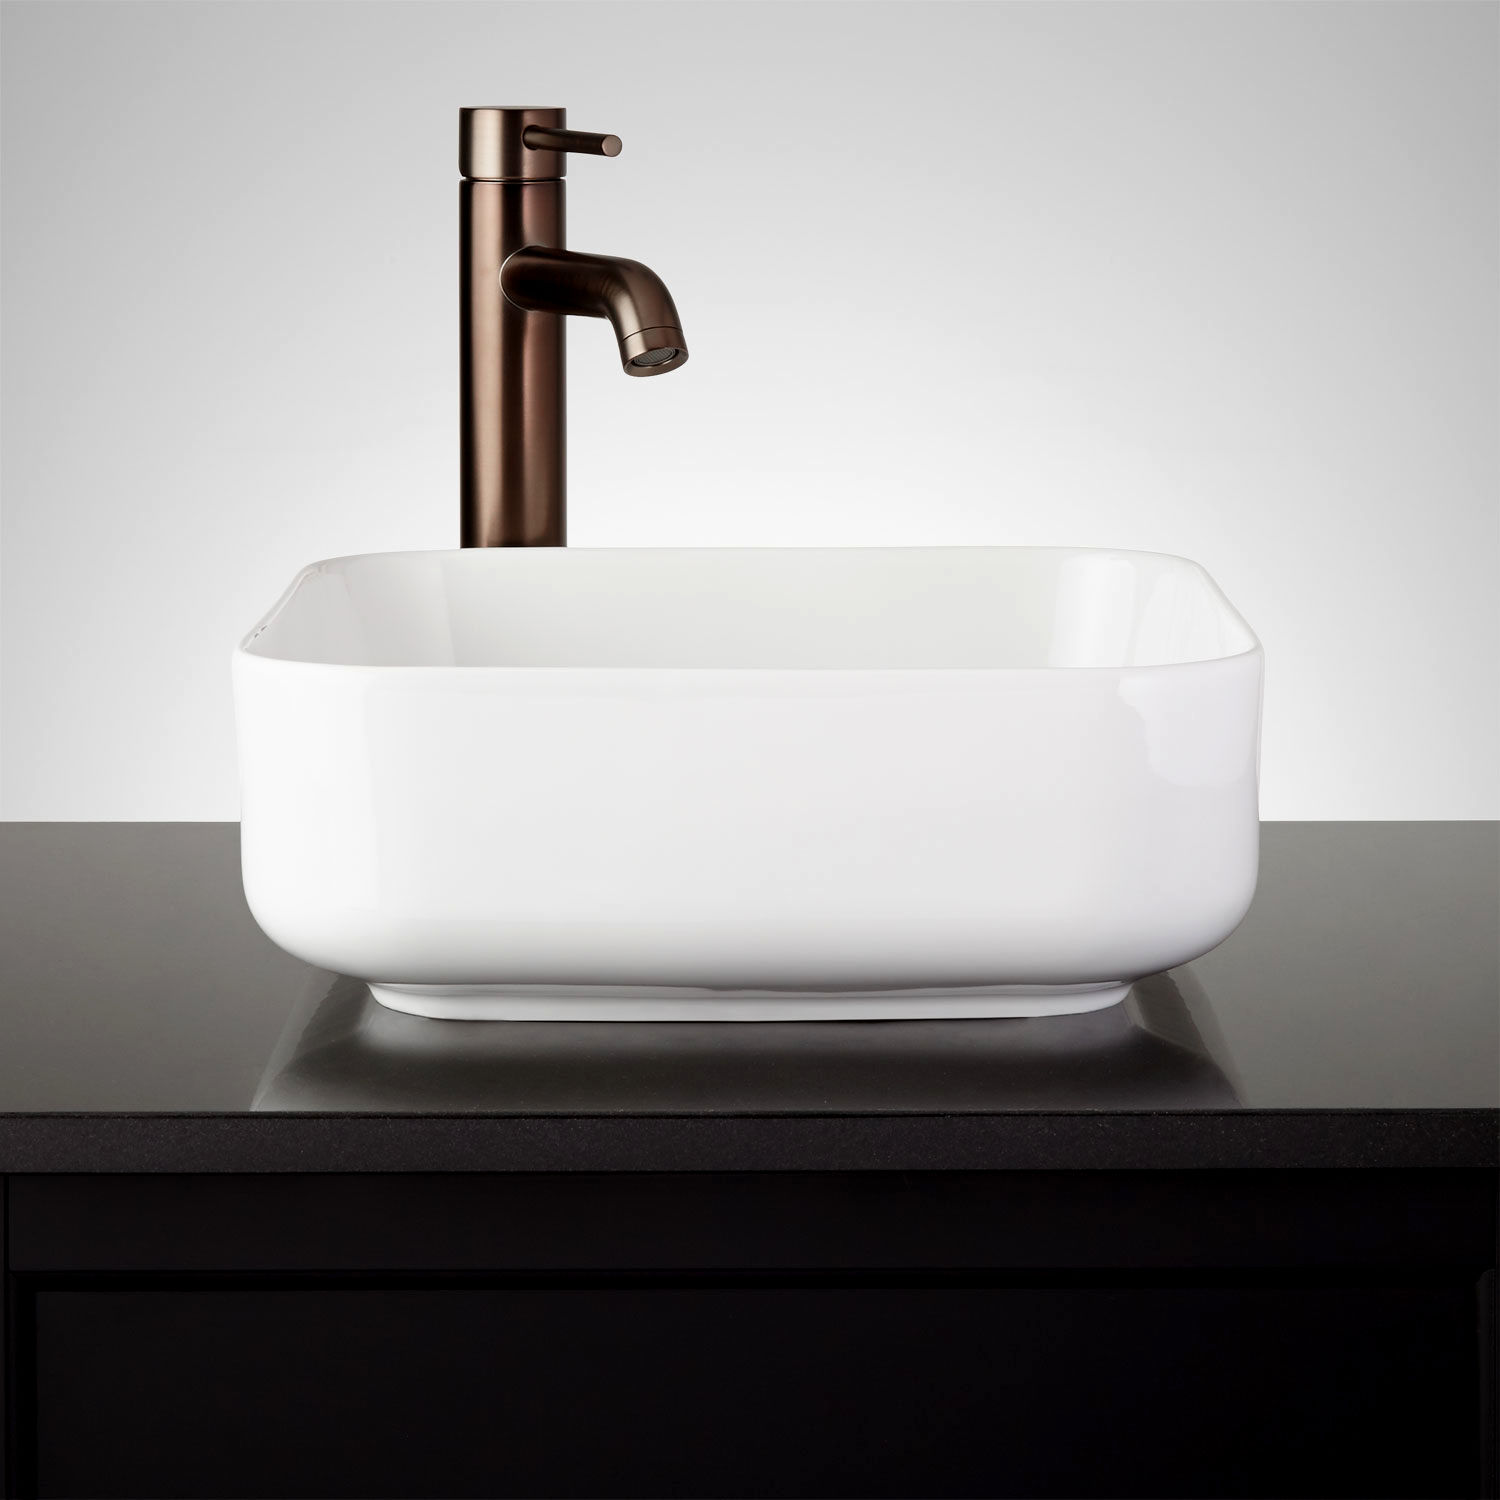 New How to Install Bathroom Faucet Photograph - Bathroom Design ...